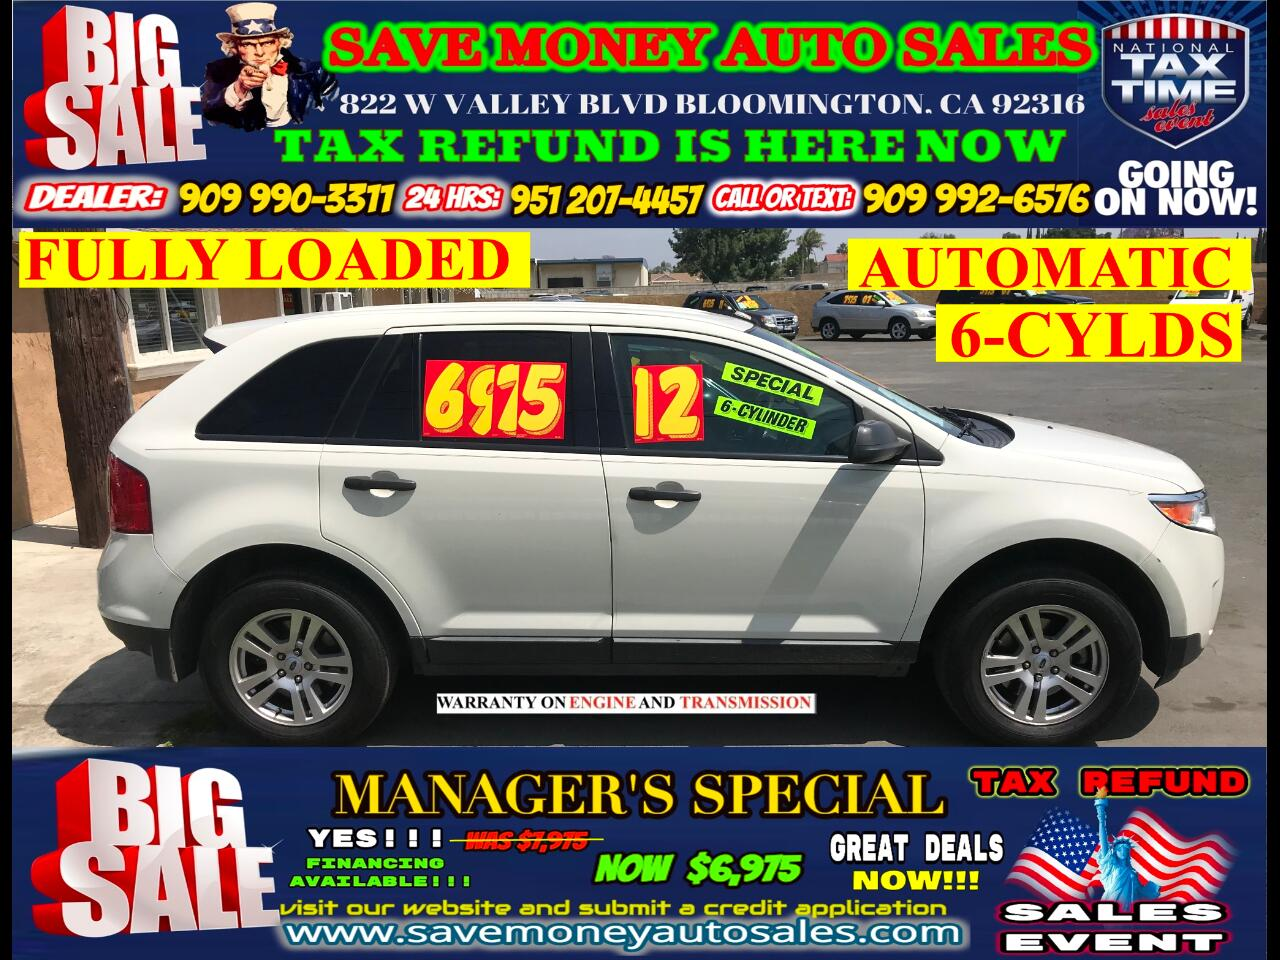 2012 Ford Edge SE FWD> FULLY LOADED> 6 CYLDS> EXTRA CLEAN